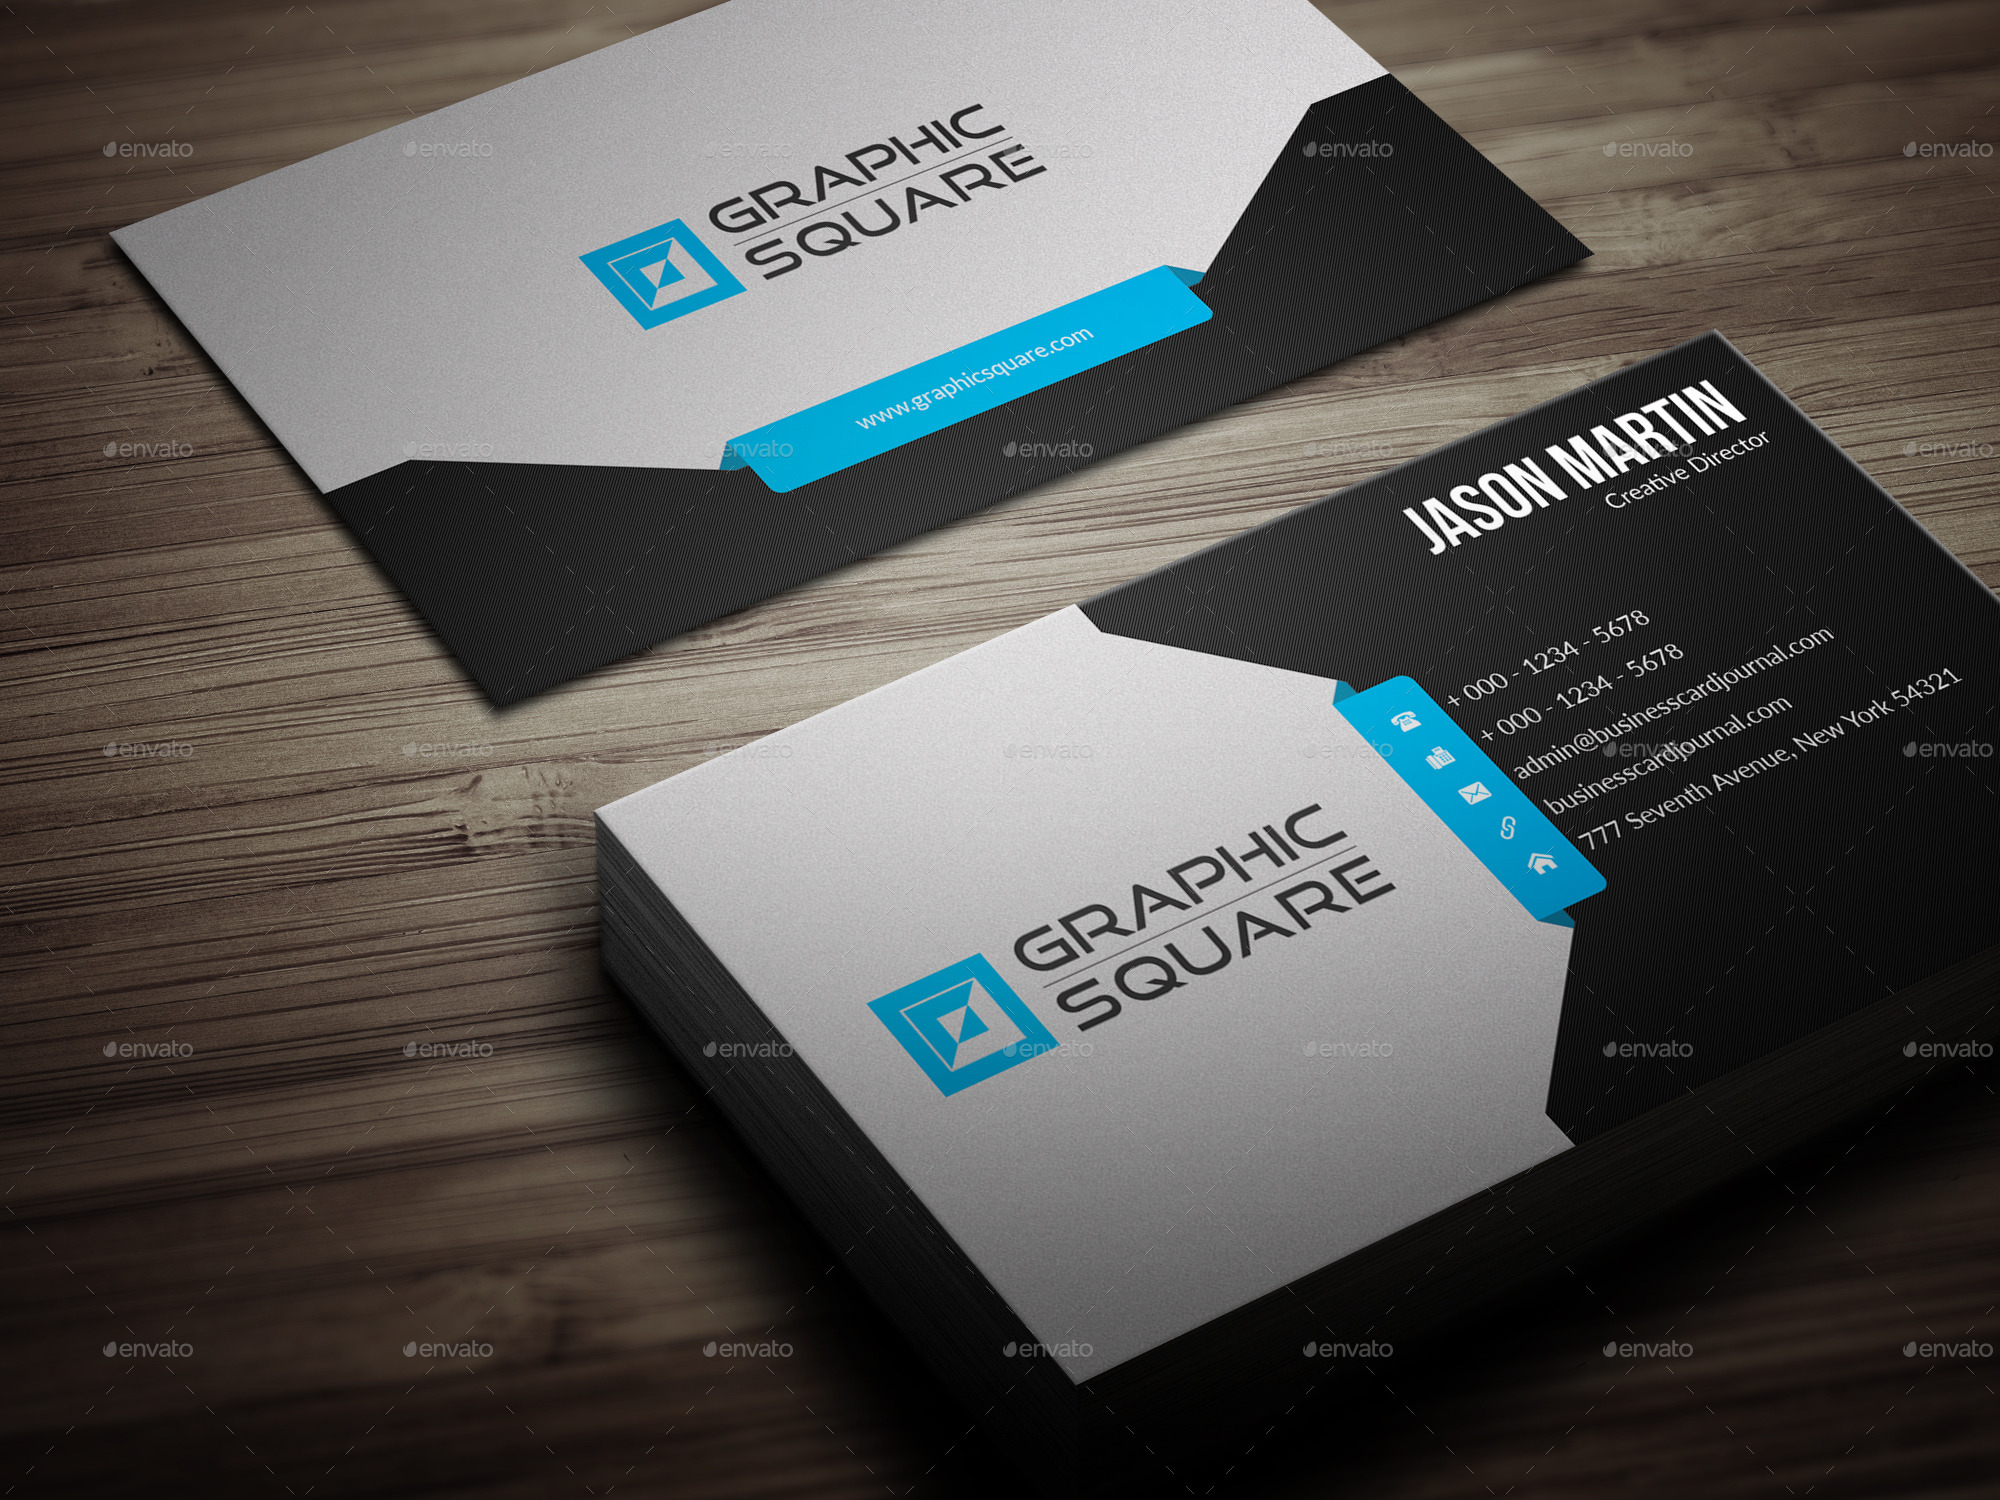 Perfect professional business card gift business card ideas corporate business card by mediusware graphicriver cheaphphosting Images